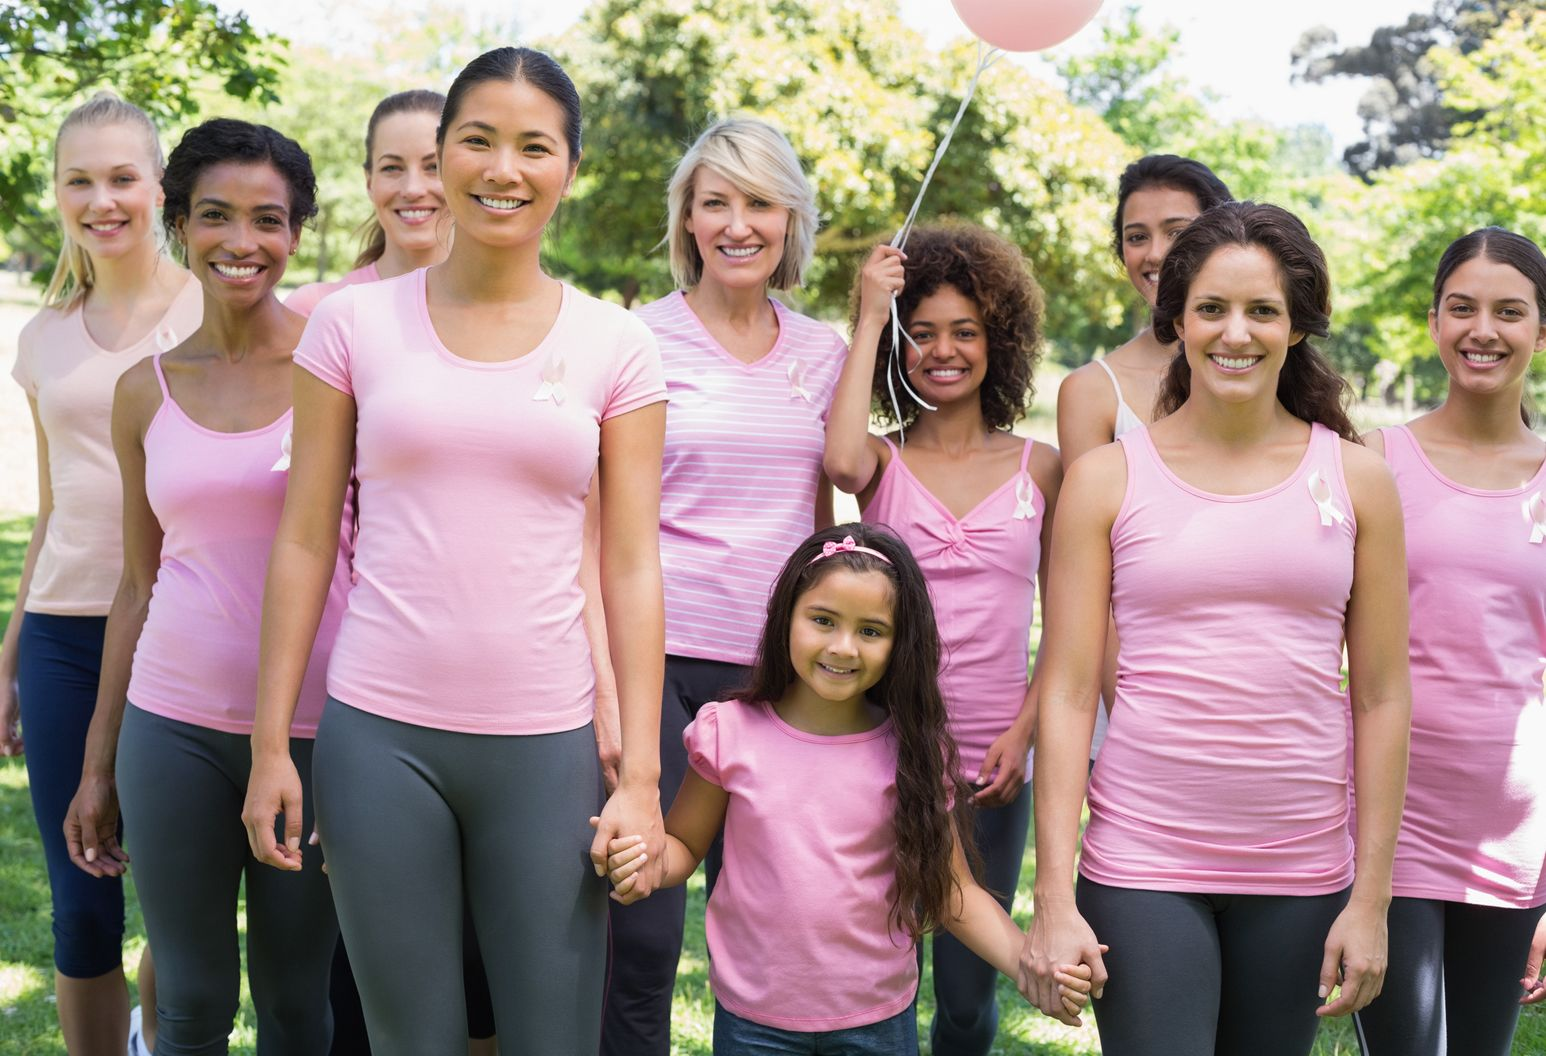 Women of all ages with pink shirts to support breast cancer awareness month.